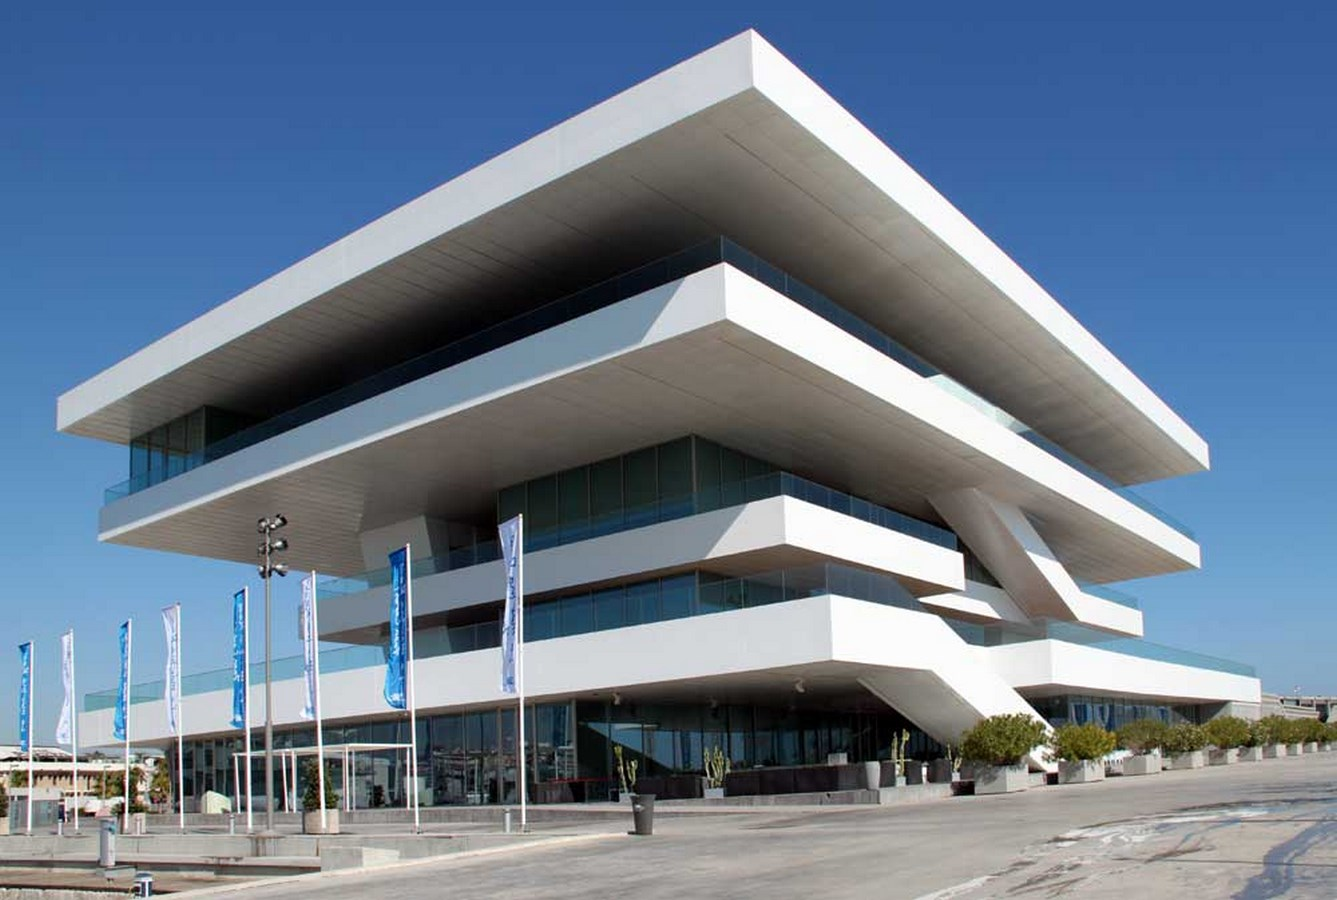 15 Projects By David Chipperfield Every Architect Must Visit! - AMERICA'S CUP BUILDING, SPAIN